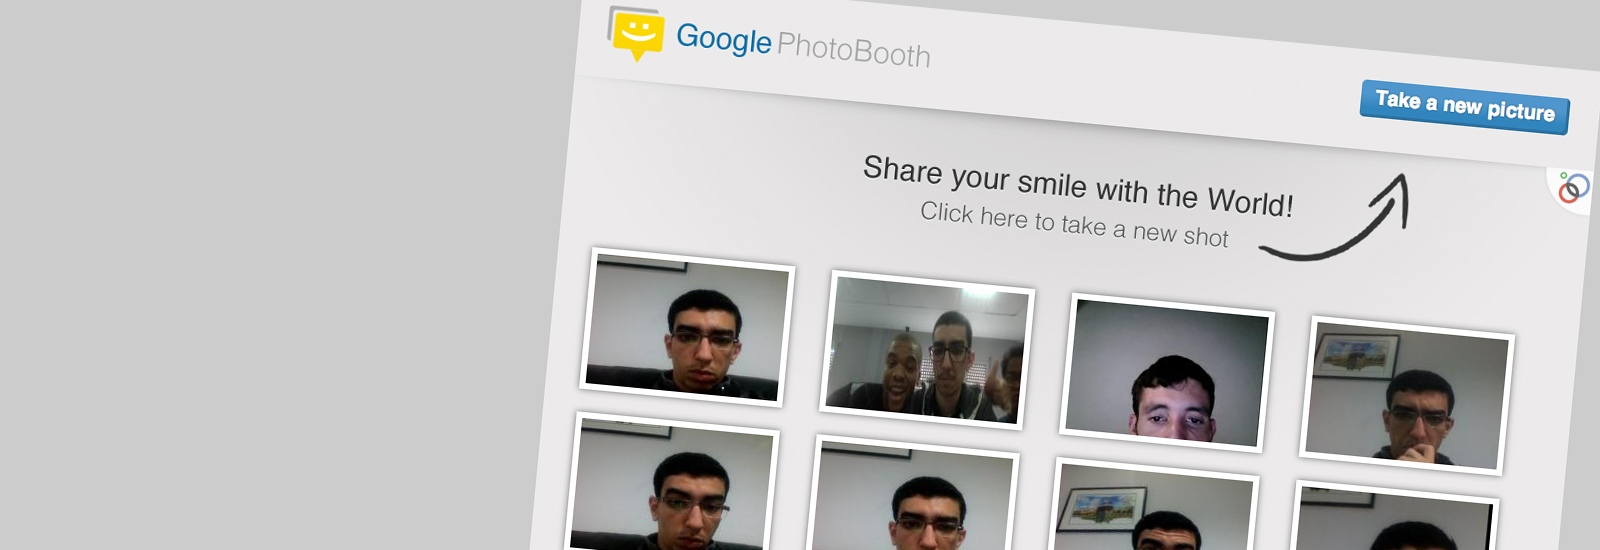 googlephotobooth-cover